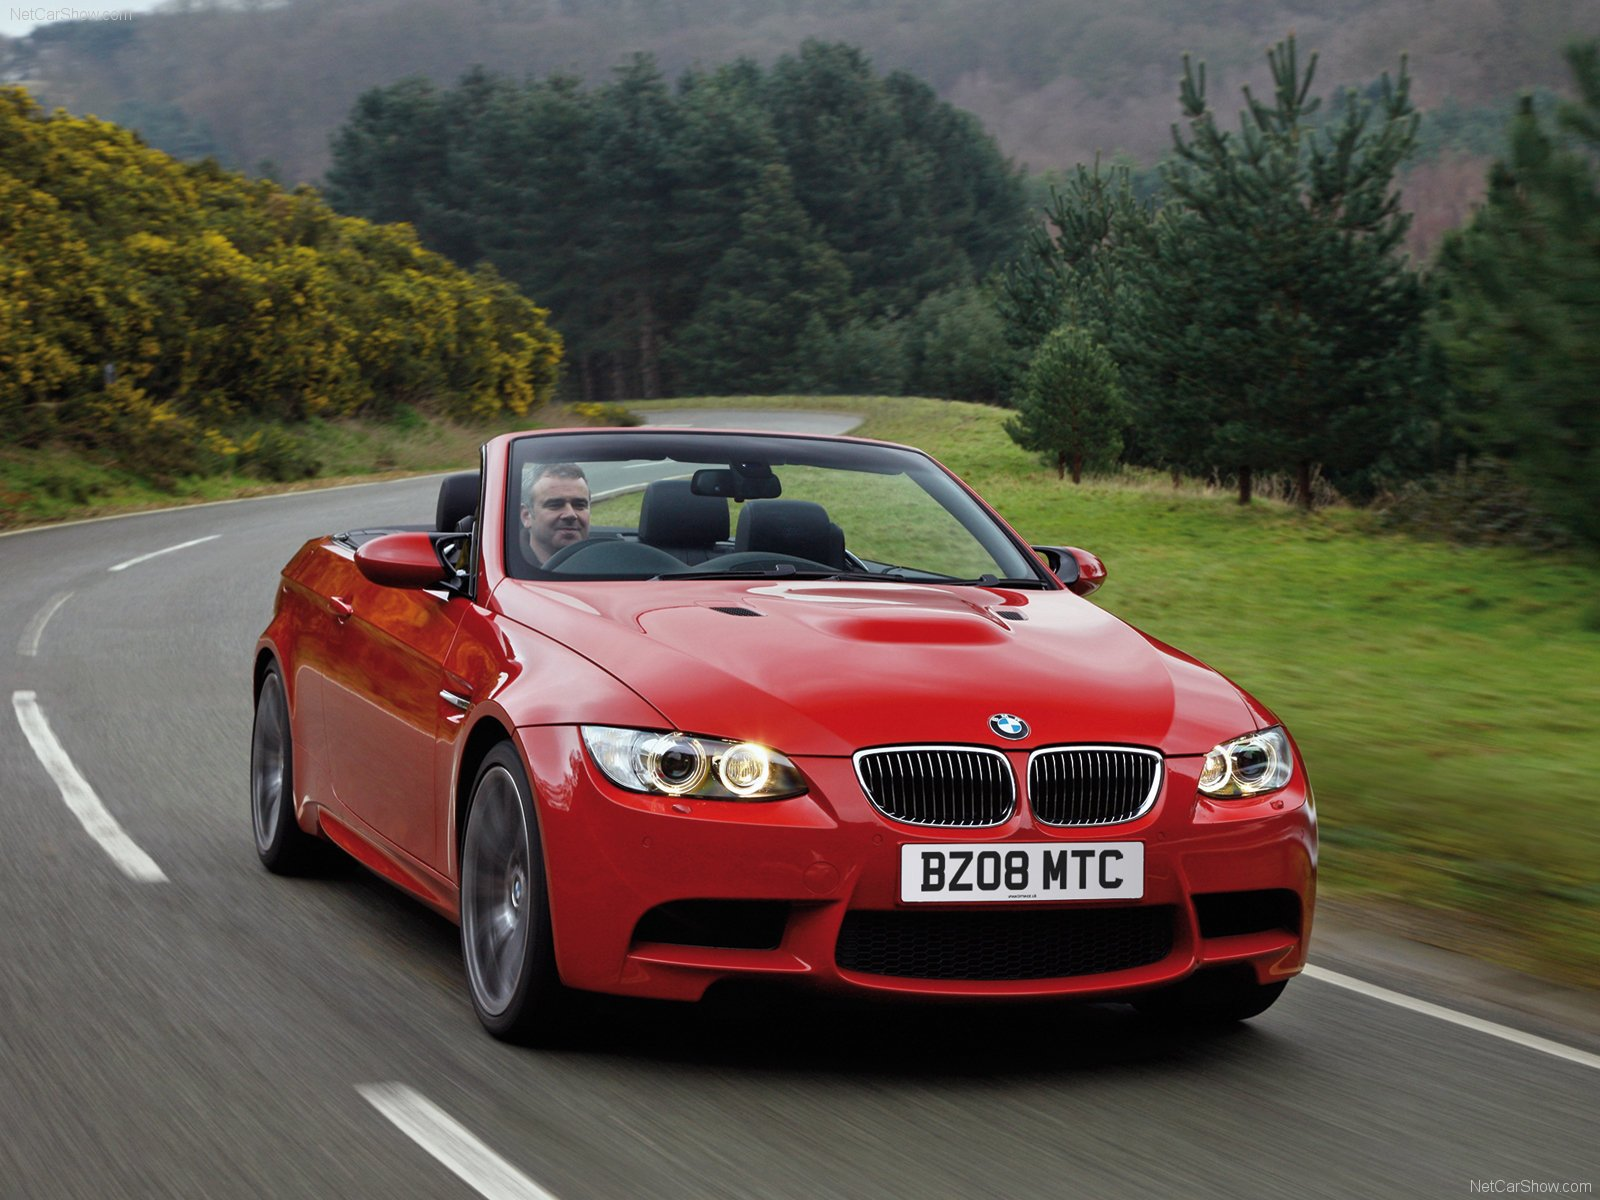 Latest Car Model 2012 Cool Bmw Cars Wallpapers Free Download